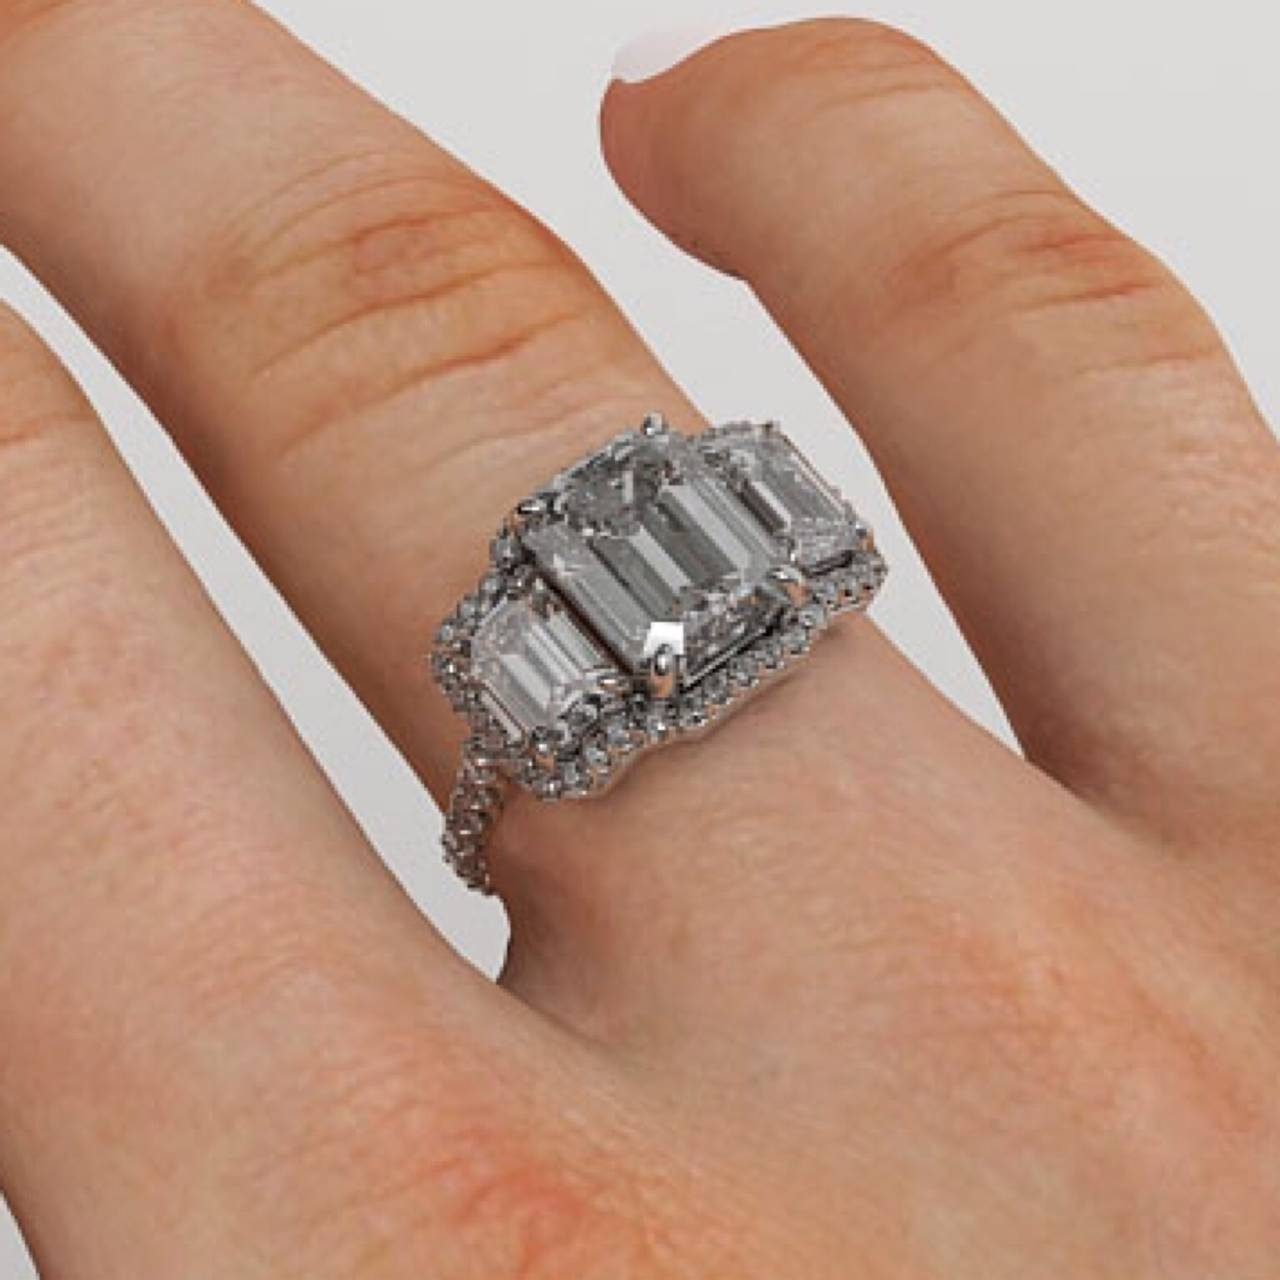 Free Diamond Rings. 3 Stone Emerald Cut Diamond Engagement Rings With Regard To 3 Stone Emerald Cut Diamond Engagement Rings (Gallery 8 of 15)